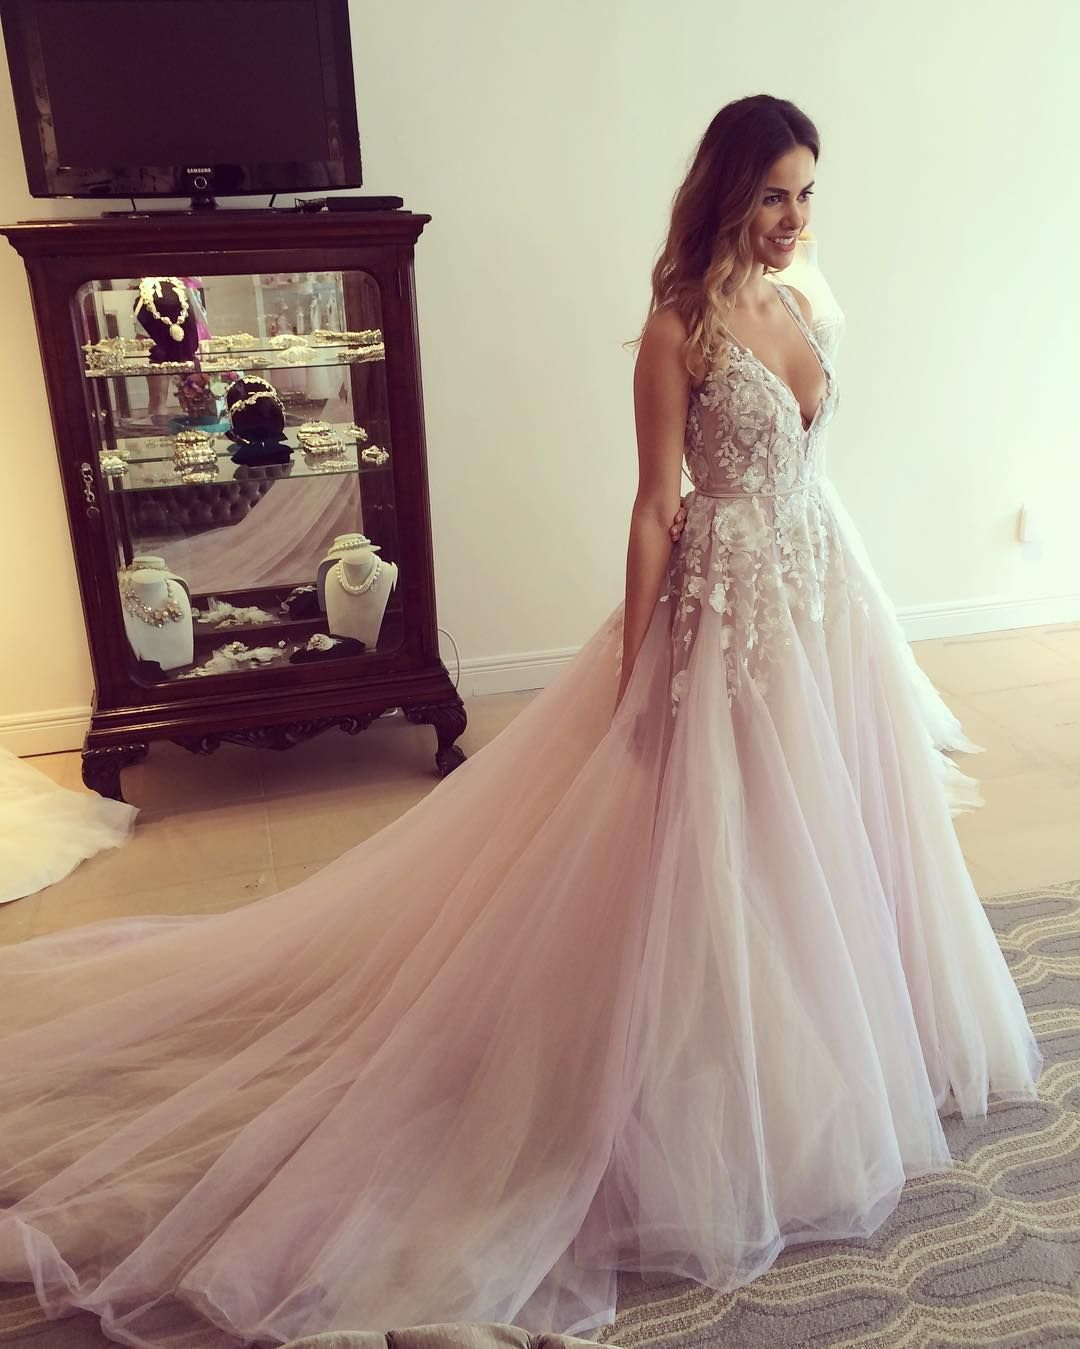 Bridal Gowns See This Instagram Photo By Misshayleypaige 6 447 Likes